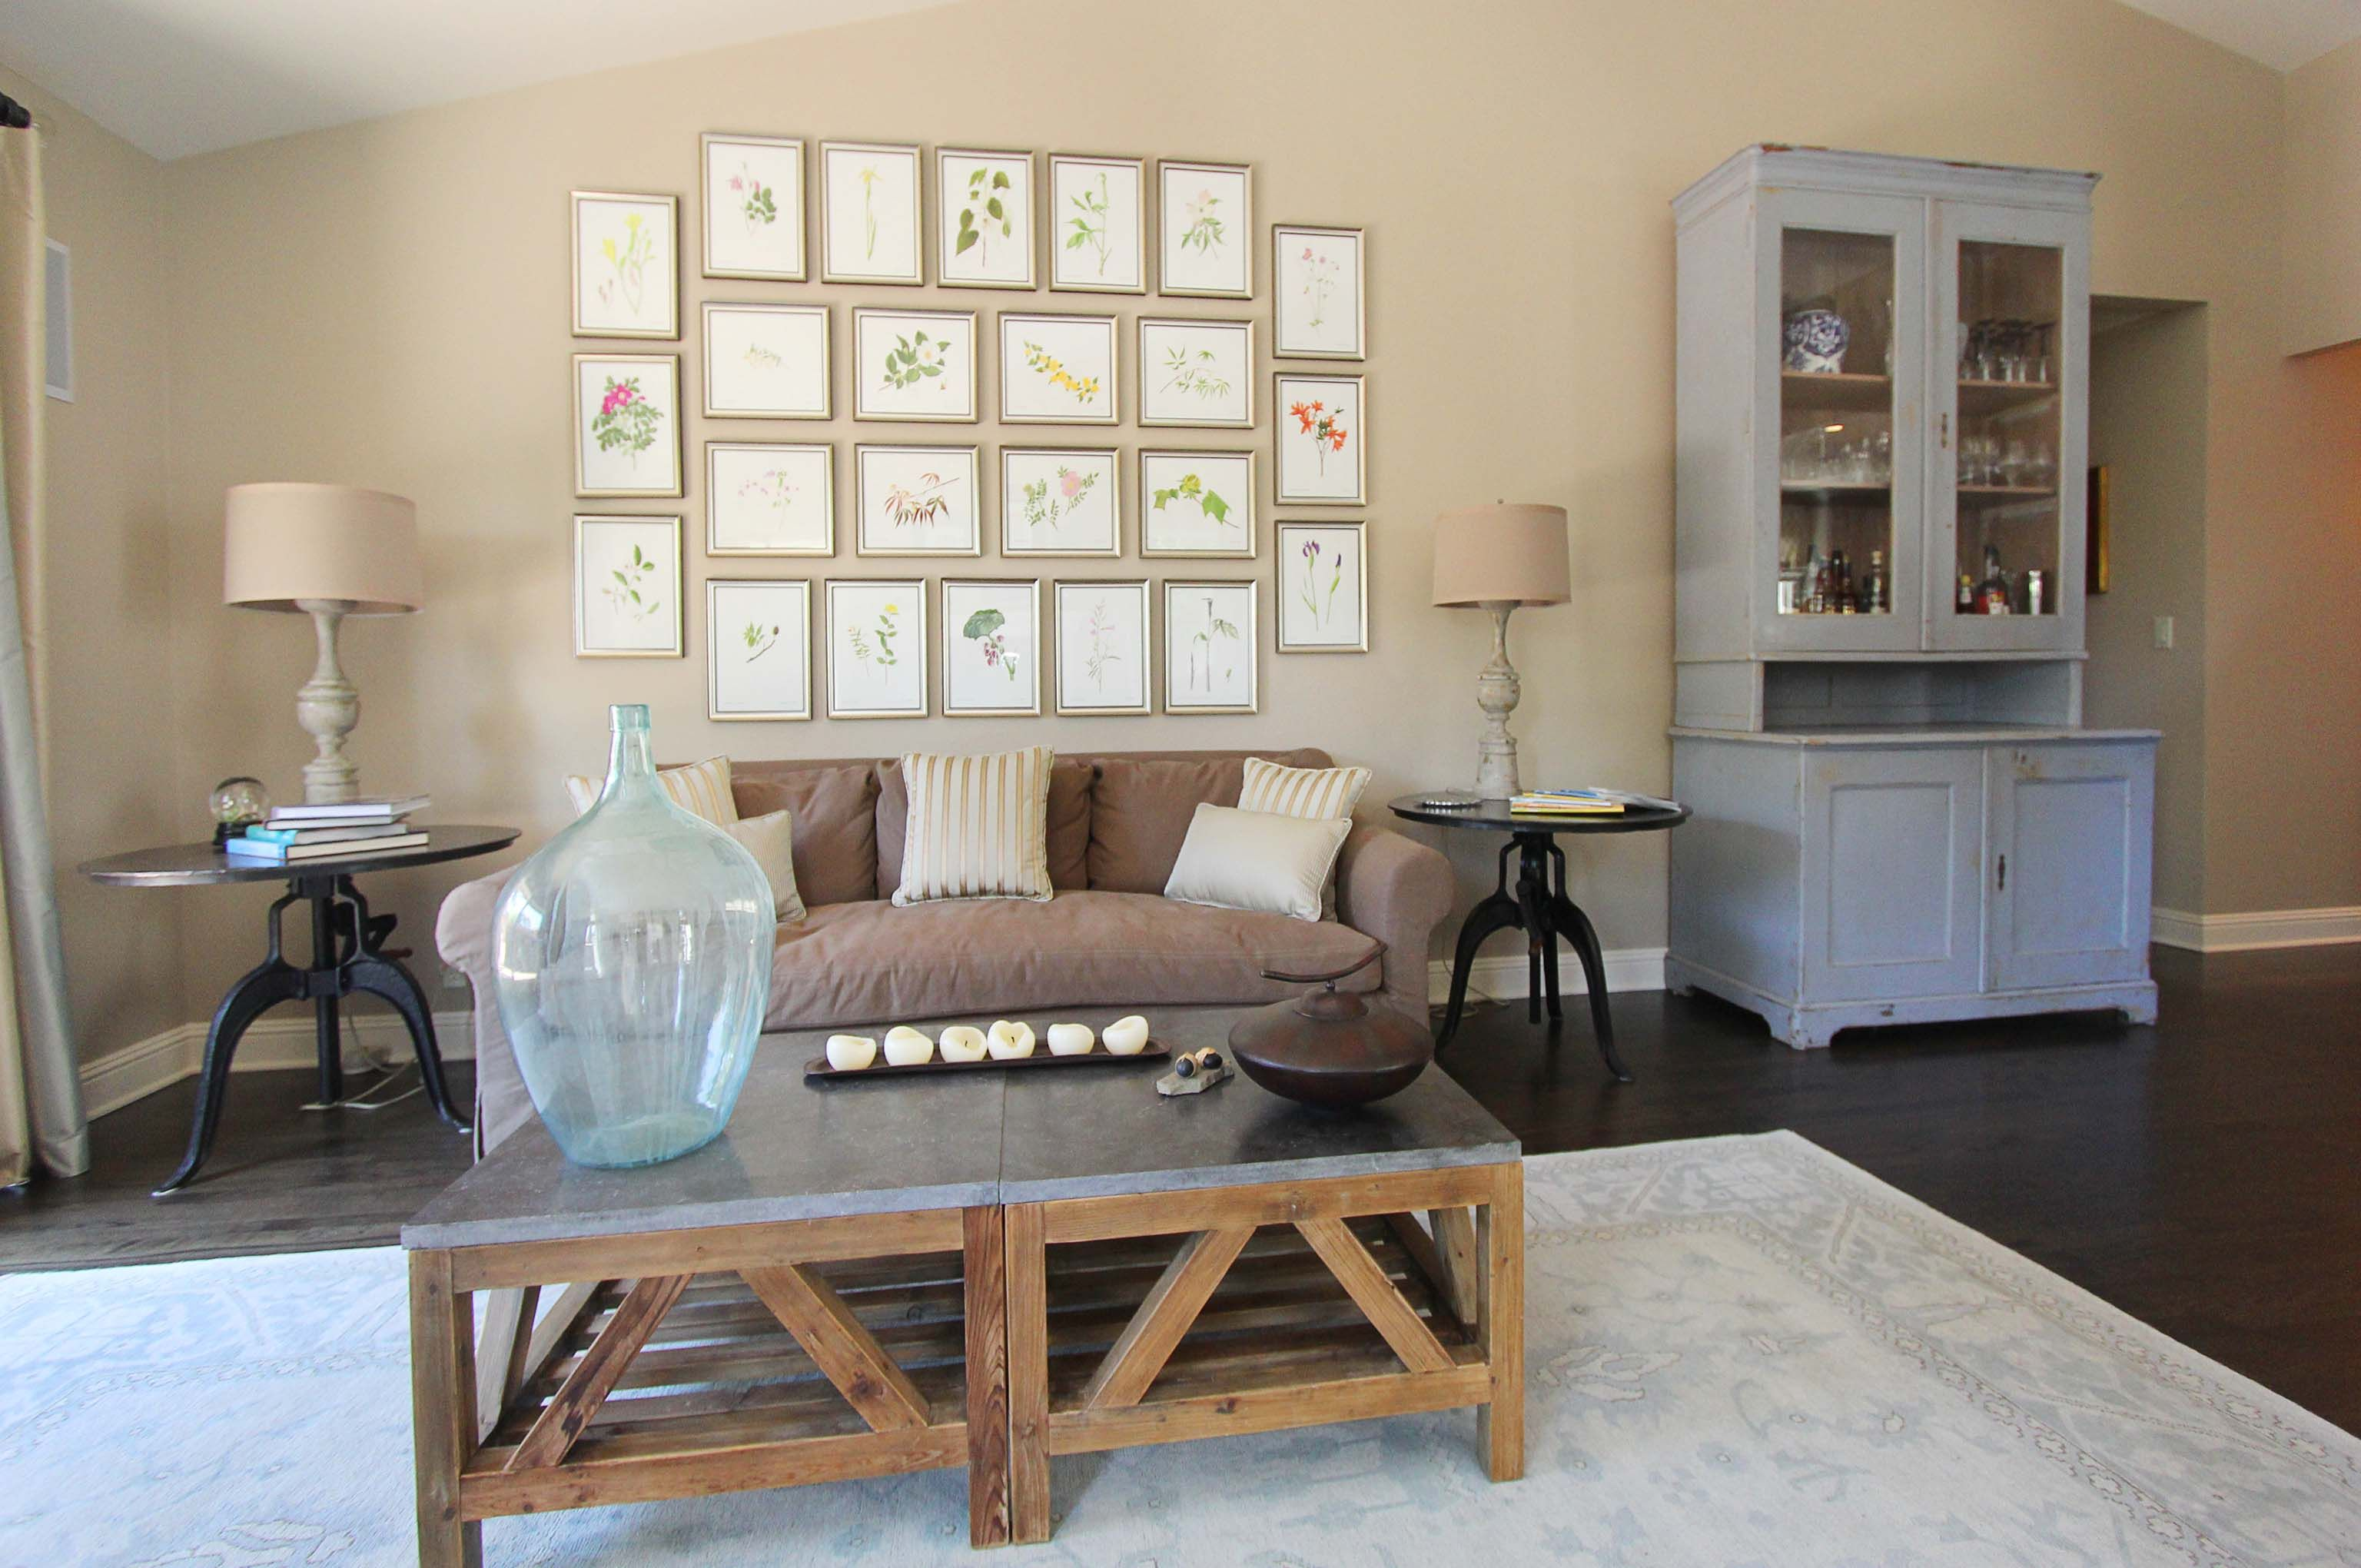 tips a stonegable easy style stonegableblog hutch styled com room living to wide shot